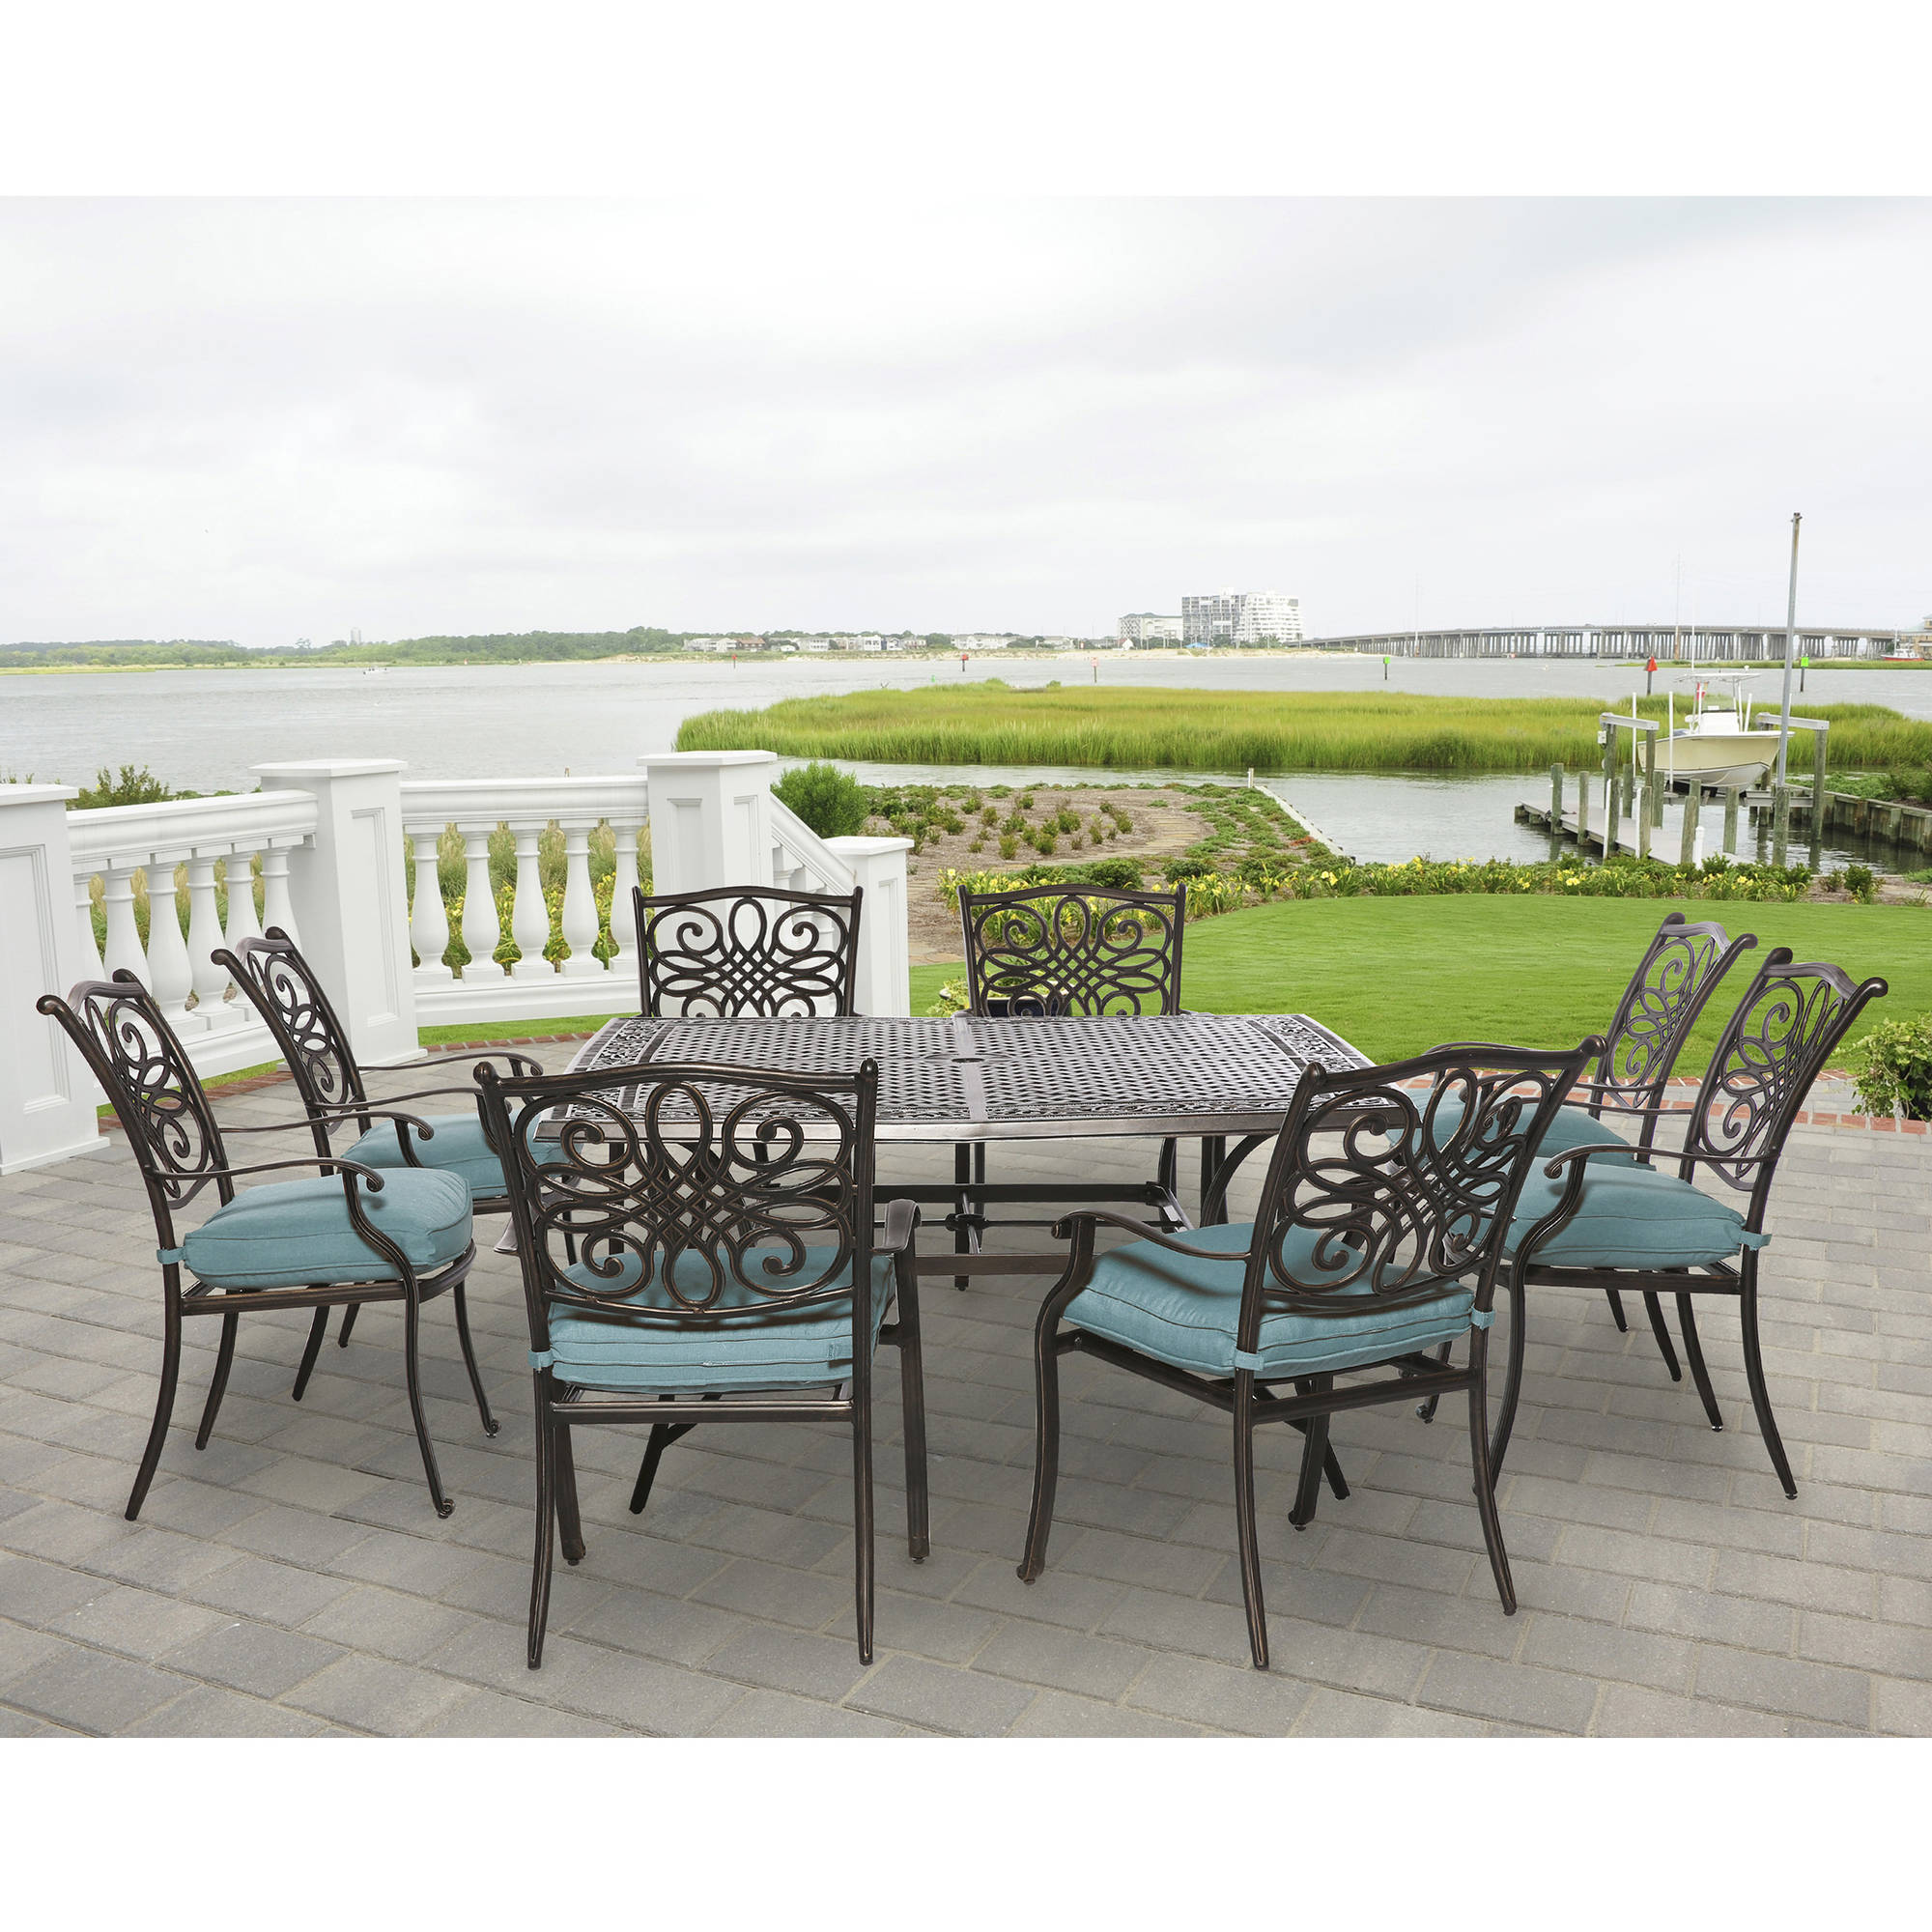 Hanover Outdoor Traditions 9-Piece Square Dining Set, Ocean Blue